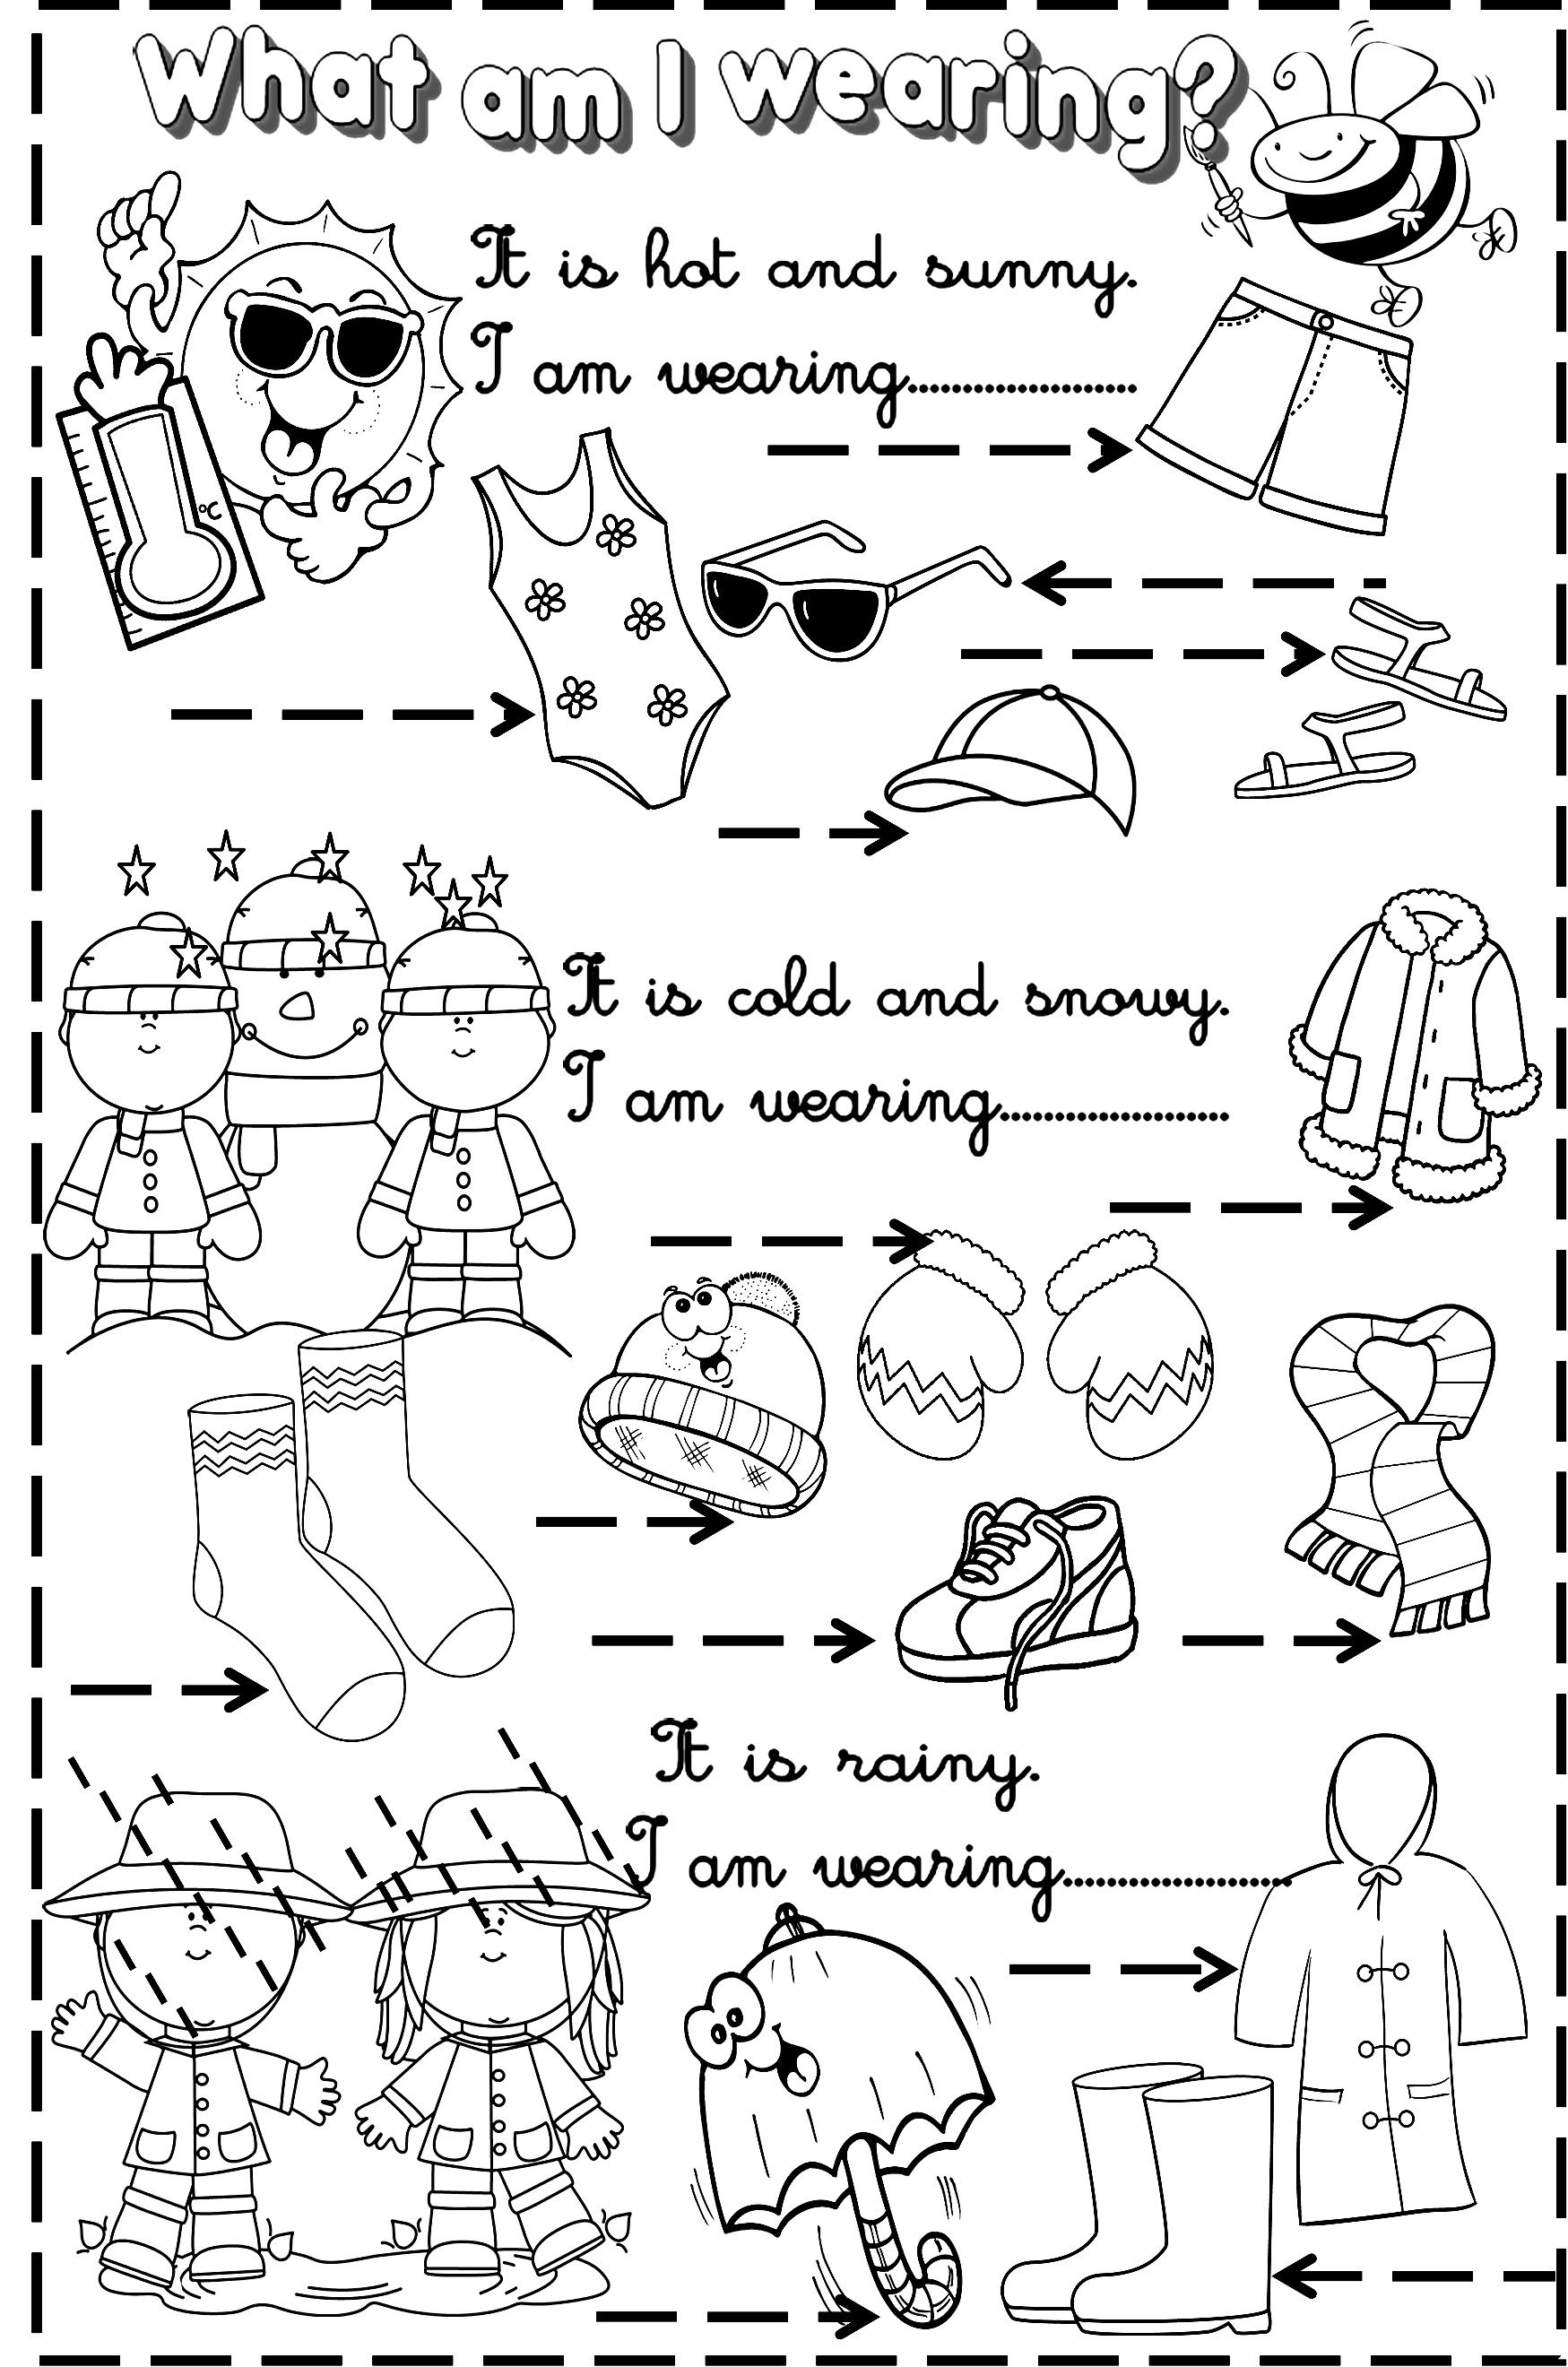 Worksheet For Kindergarten Clothes